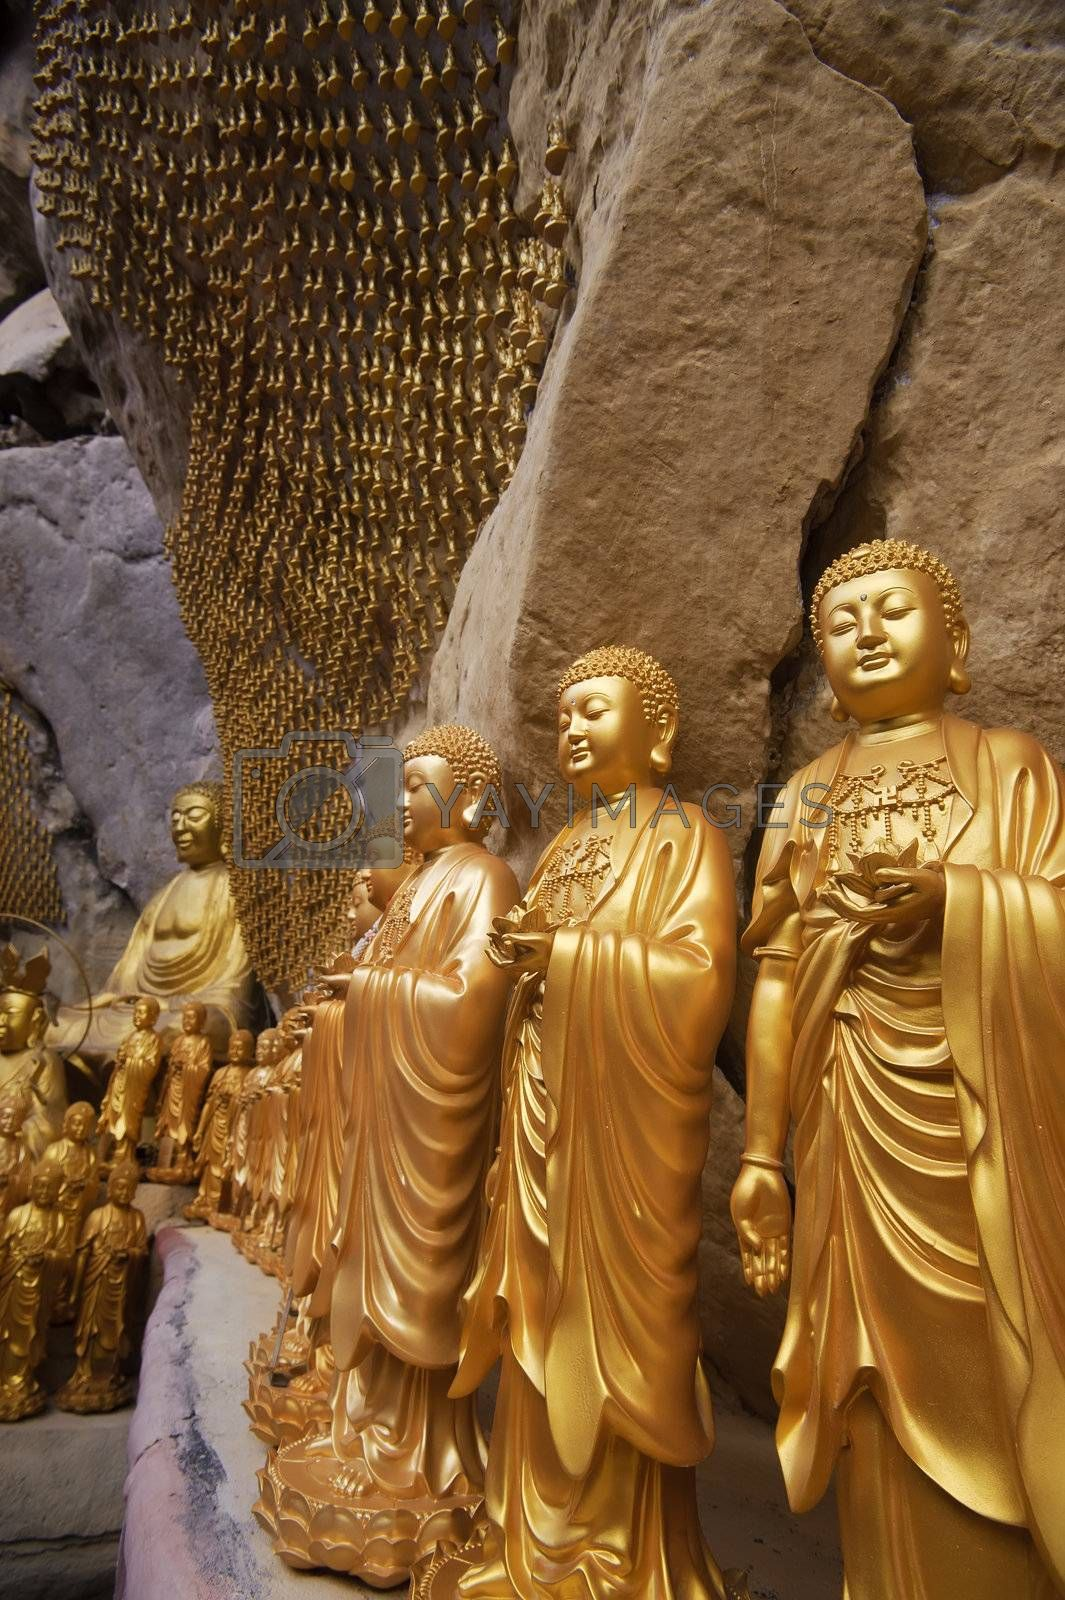 Golden statues of Buddha in carving in Ipoh, Malaysia, Asia.